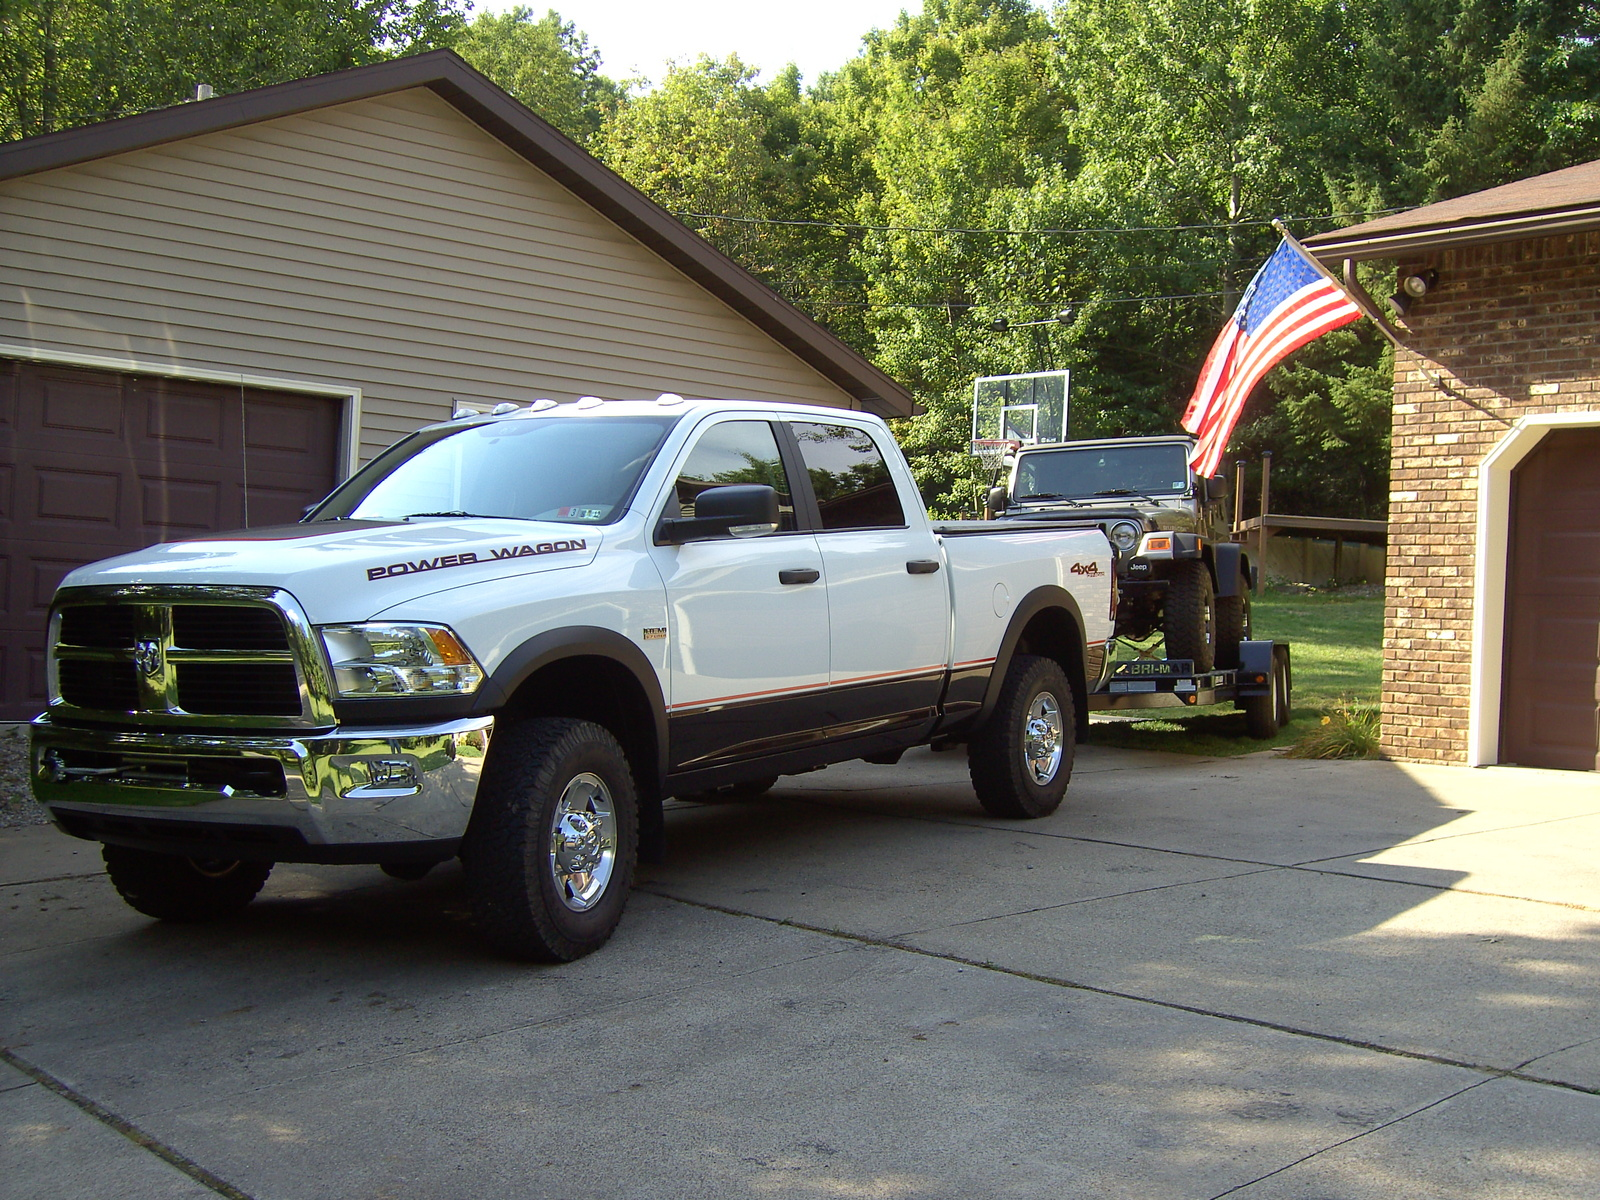 2011 Ram 2500 Power Wagon Crew Cab 6.3 ft. Bed 4WD picture, exterior